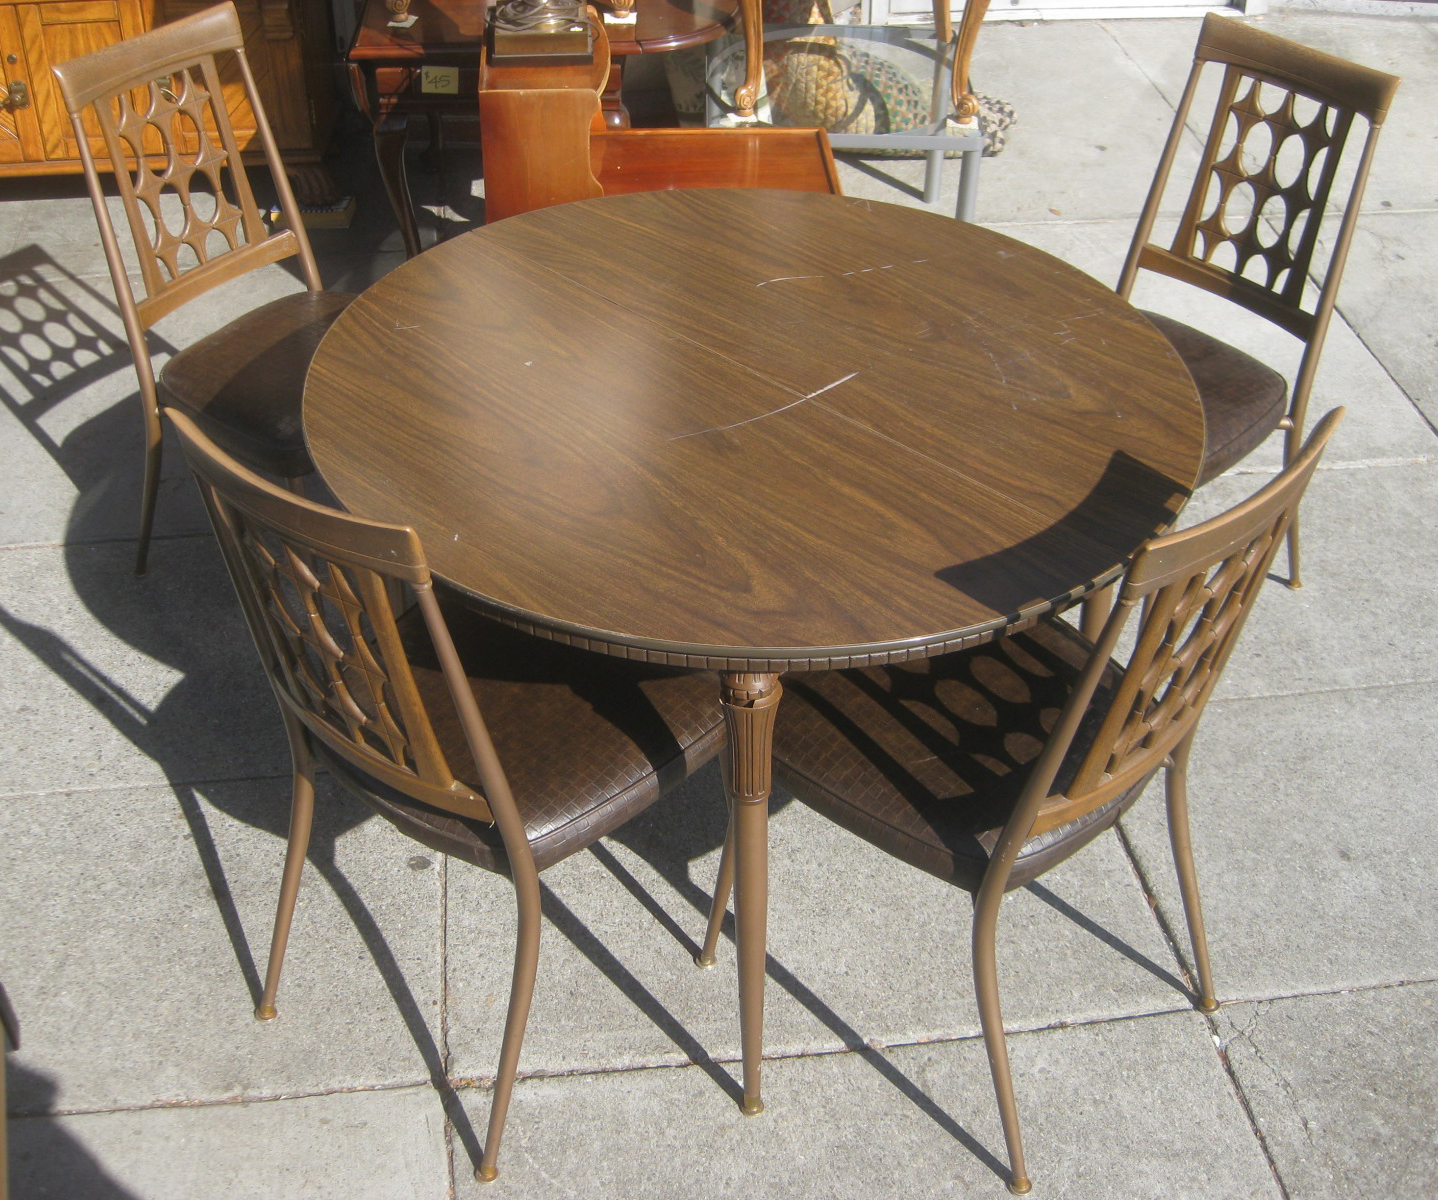 50s Table And Chairs Uhuru Furniture And Collectibles Sold Retro Kitchen Table